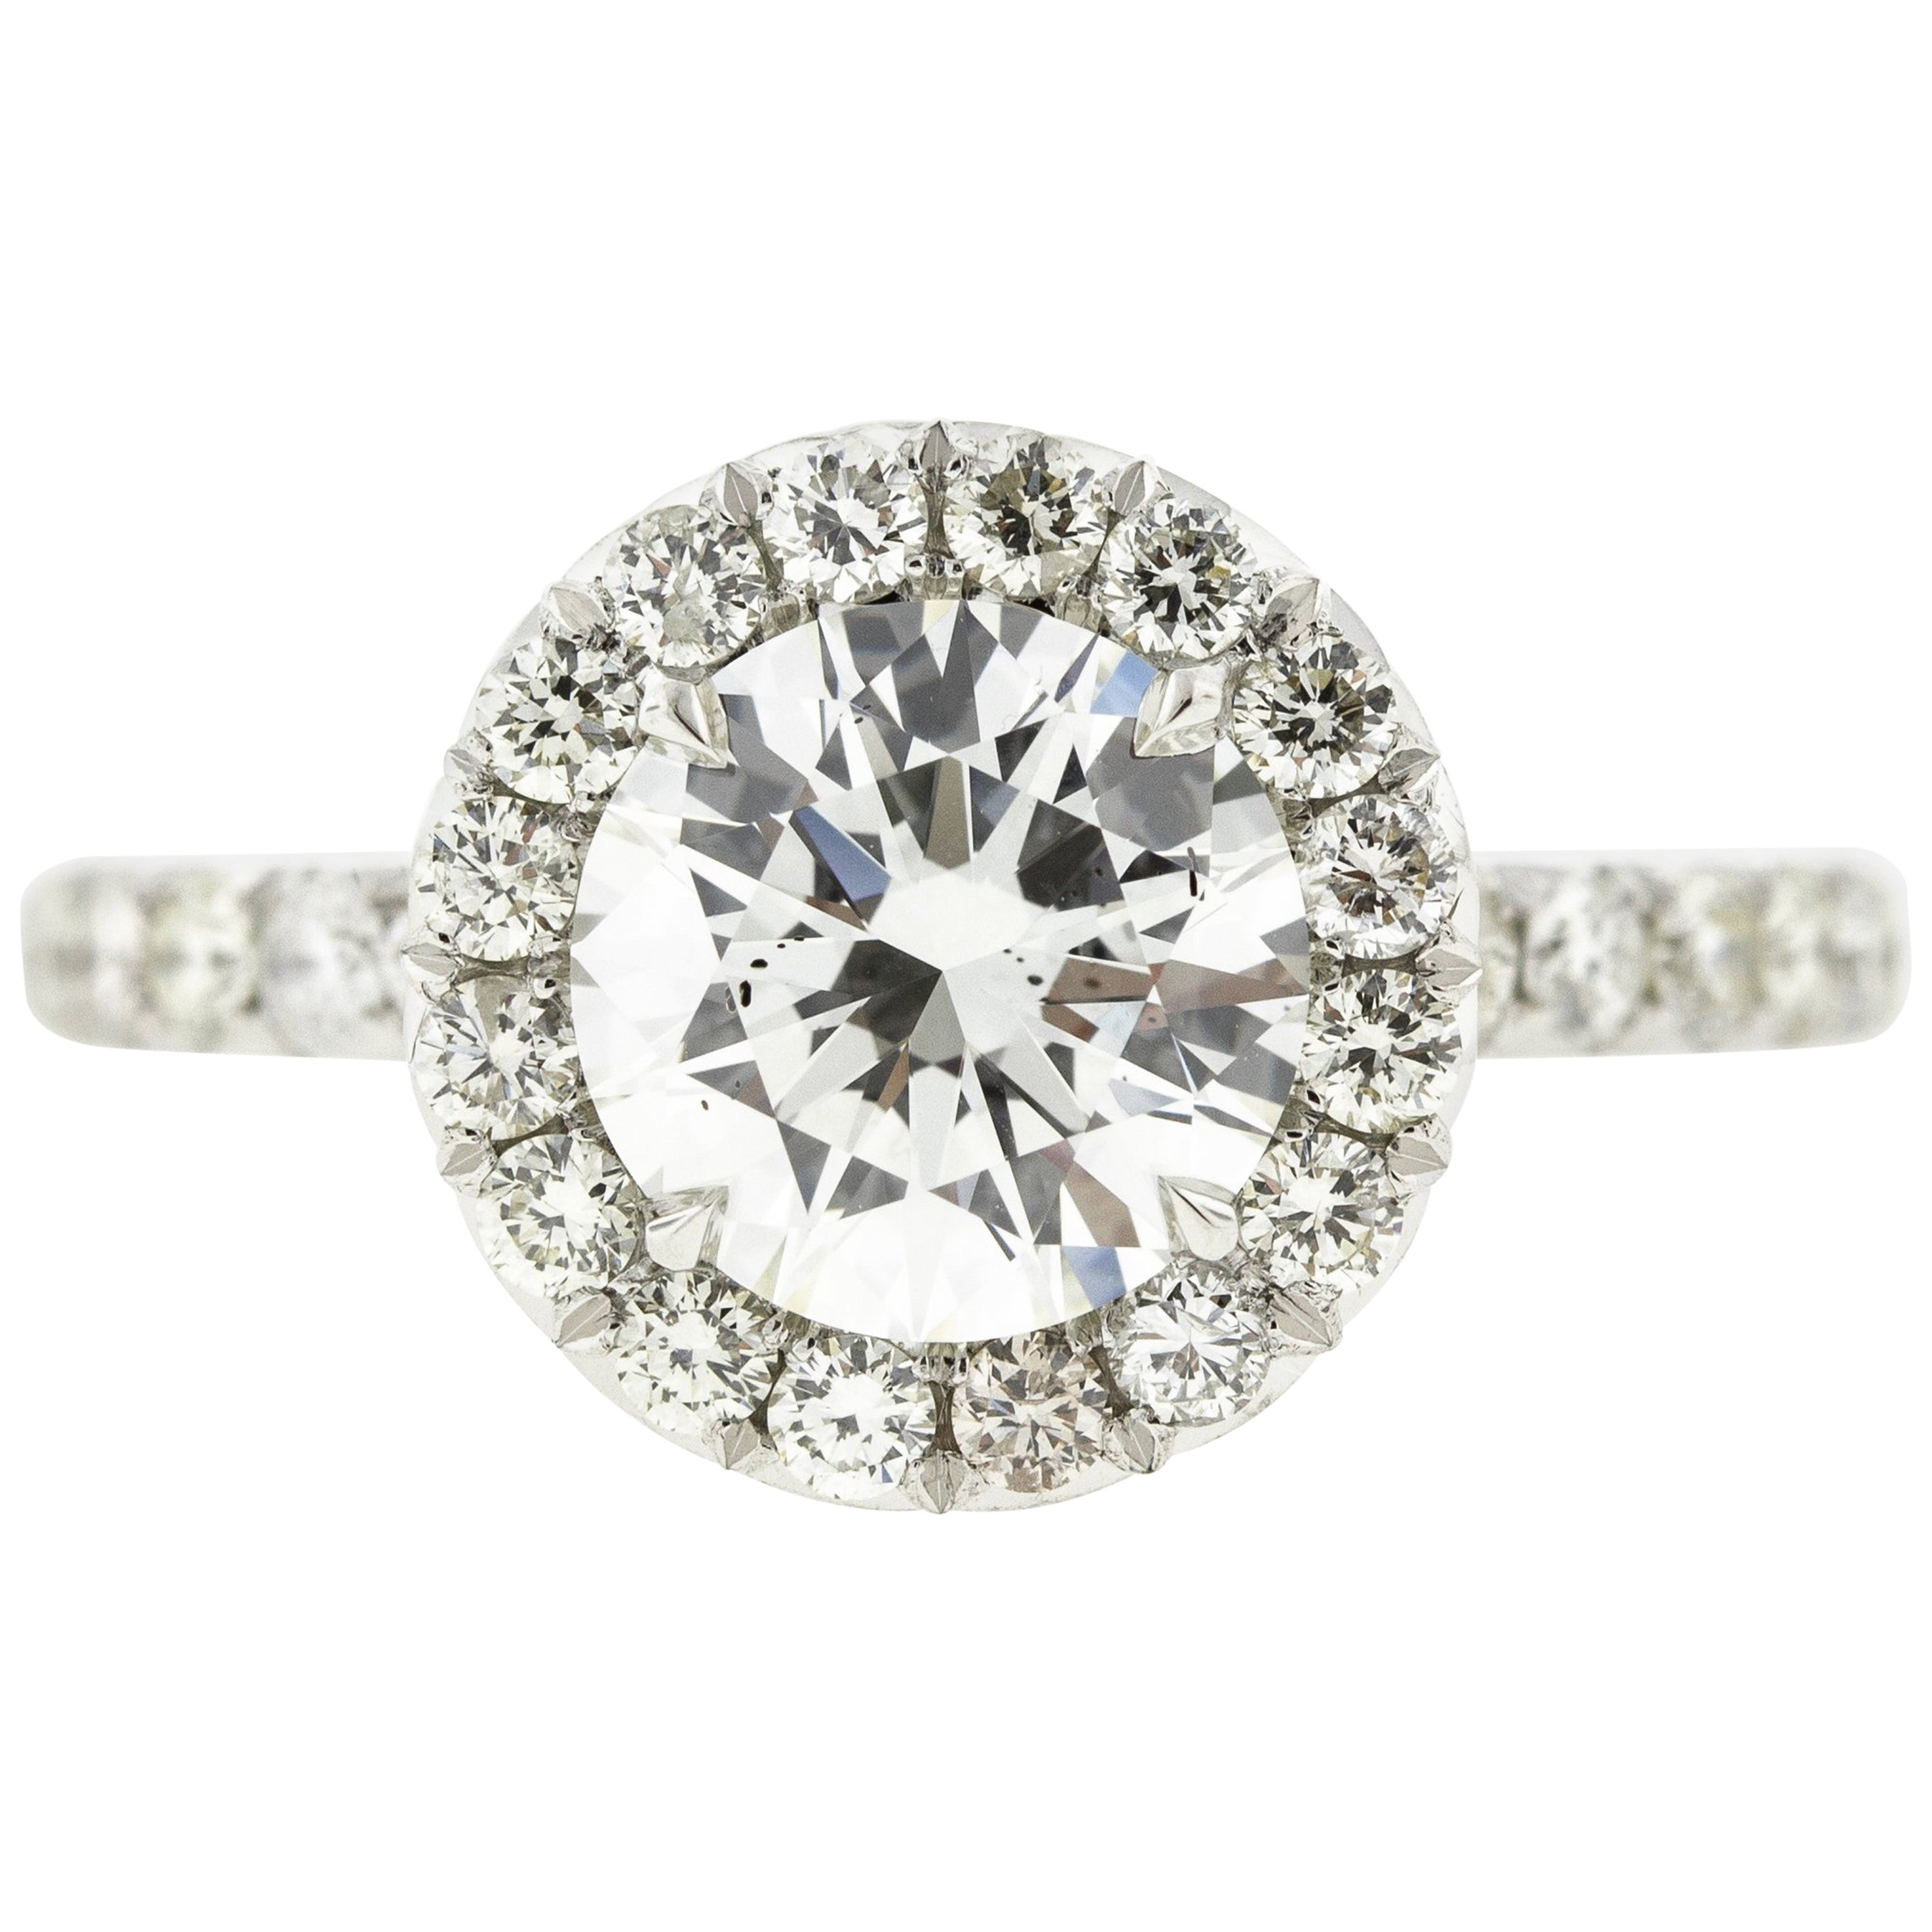 Head-on-Shank Round Diamond Halo Engagement Ring 'GIA'